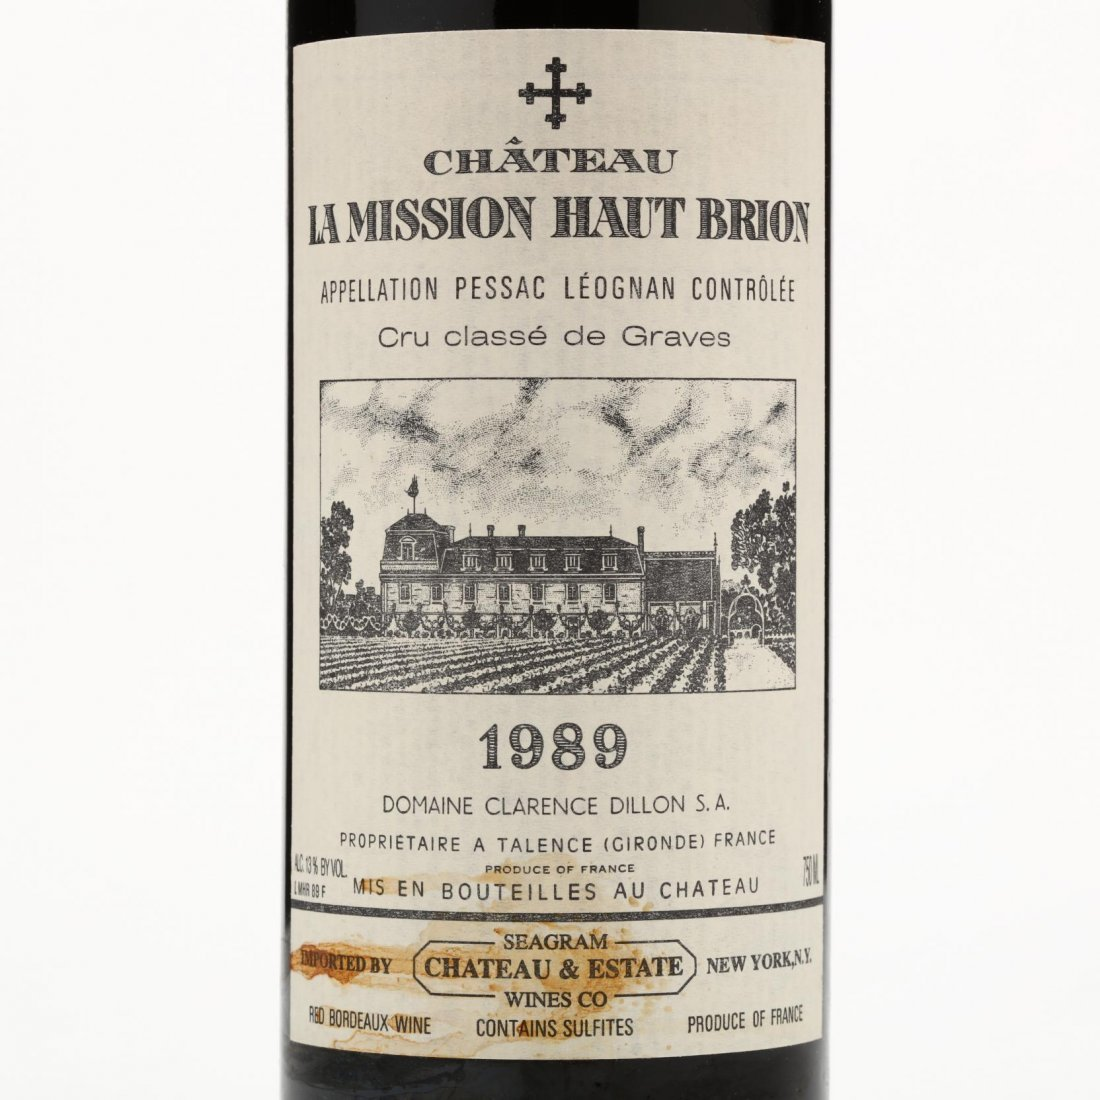 Chateau La Mission Haut Brion - Vintage 1989 - 2